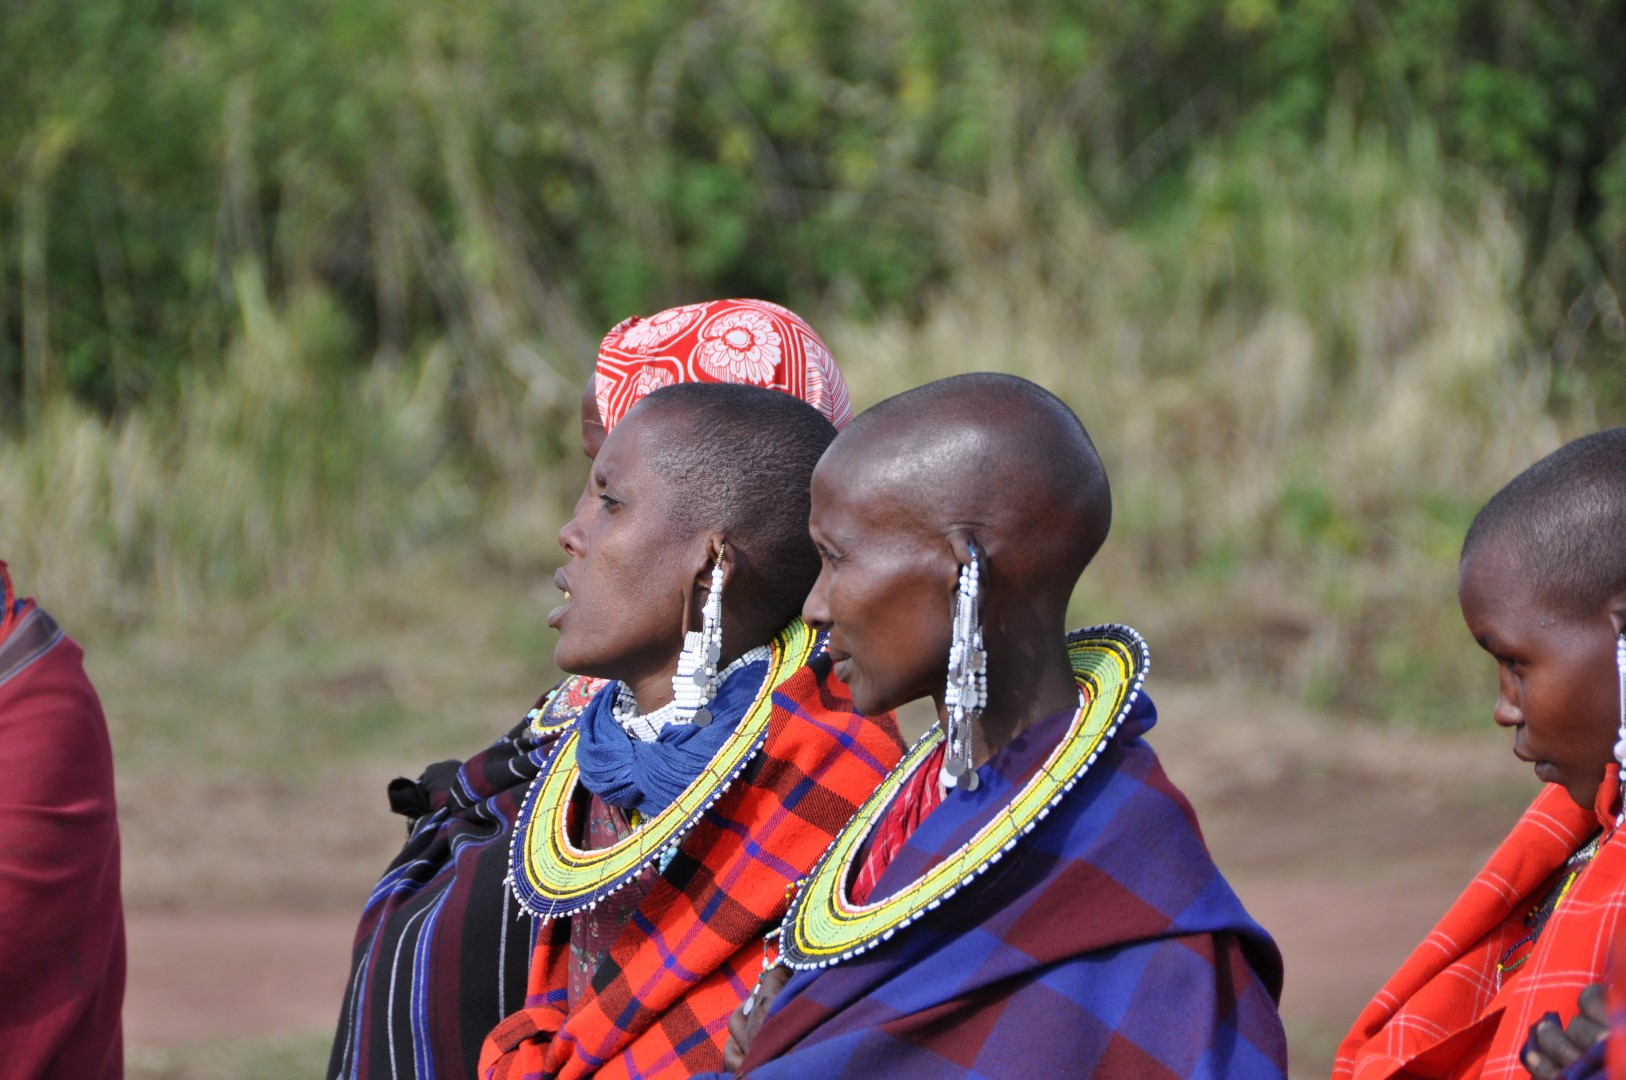 massai women Salome mpongoliana was poor, lacked education, and had little control over her family's finances but when she joined a women's group and discovered beekeeping, her fortunes began to change.